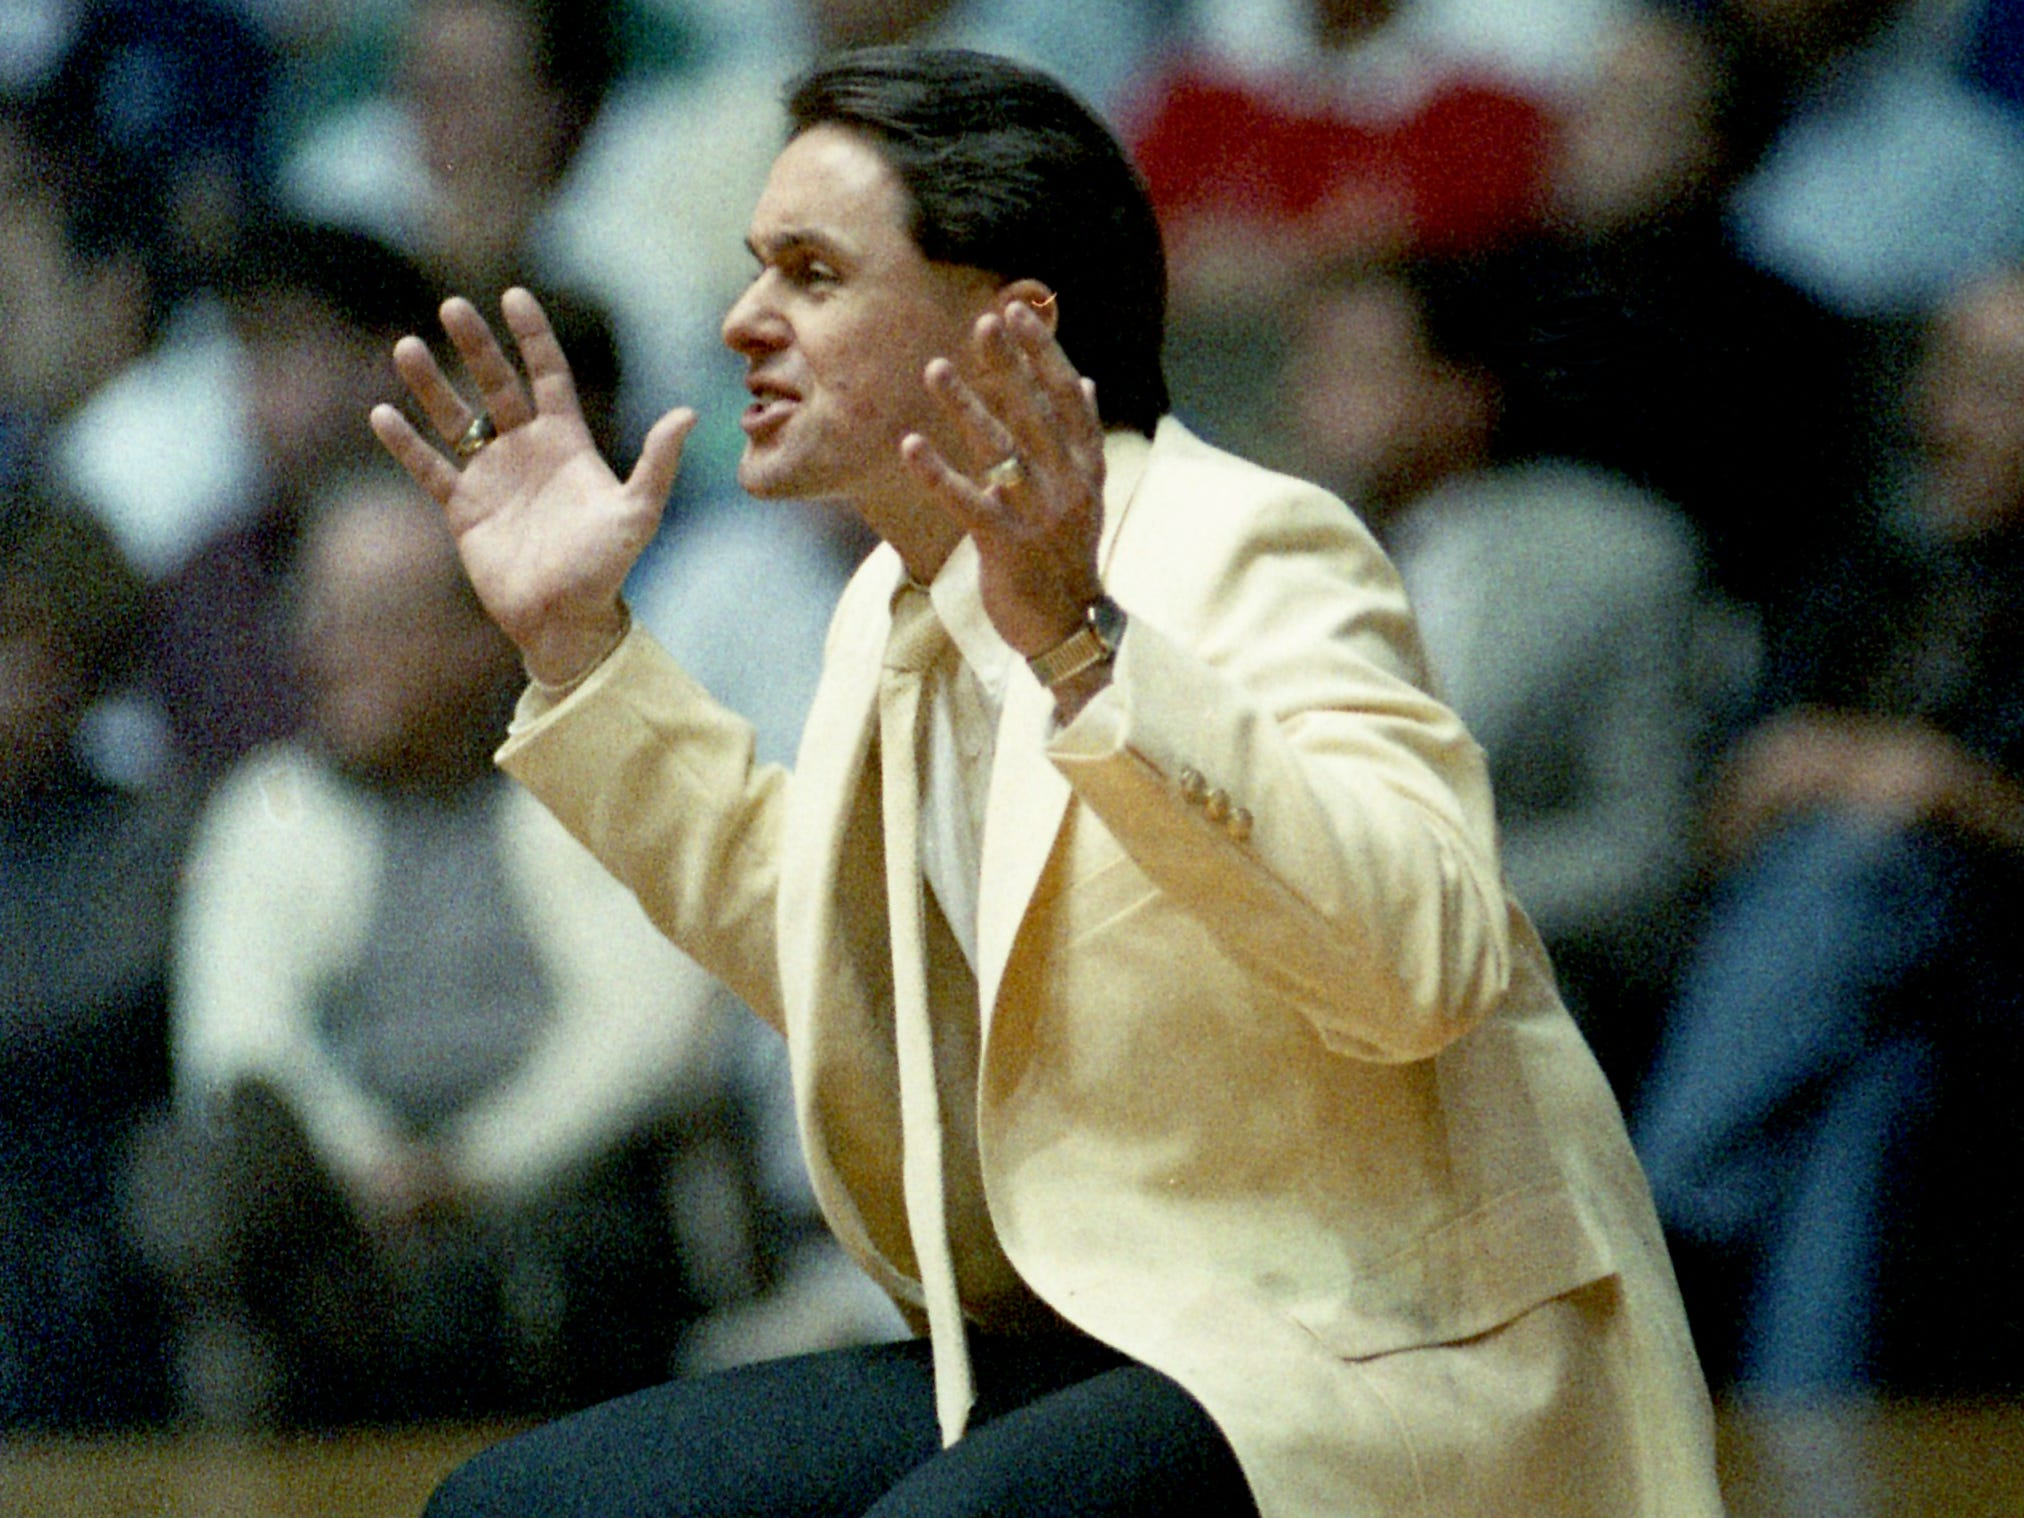 Middle Tennessee State head coach Bruce Stewart shouts instructions to his players, but it wasn't enough as the Blue Raiders fall 104-88 to Virginia in the second round of the NCAA Southeast Regional before a crowd of 13,543 at Vanderbilt's Memorial Gym on March 18, 1989.